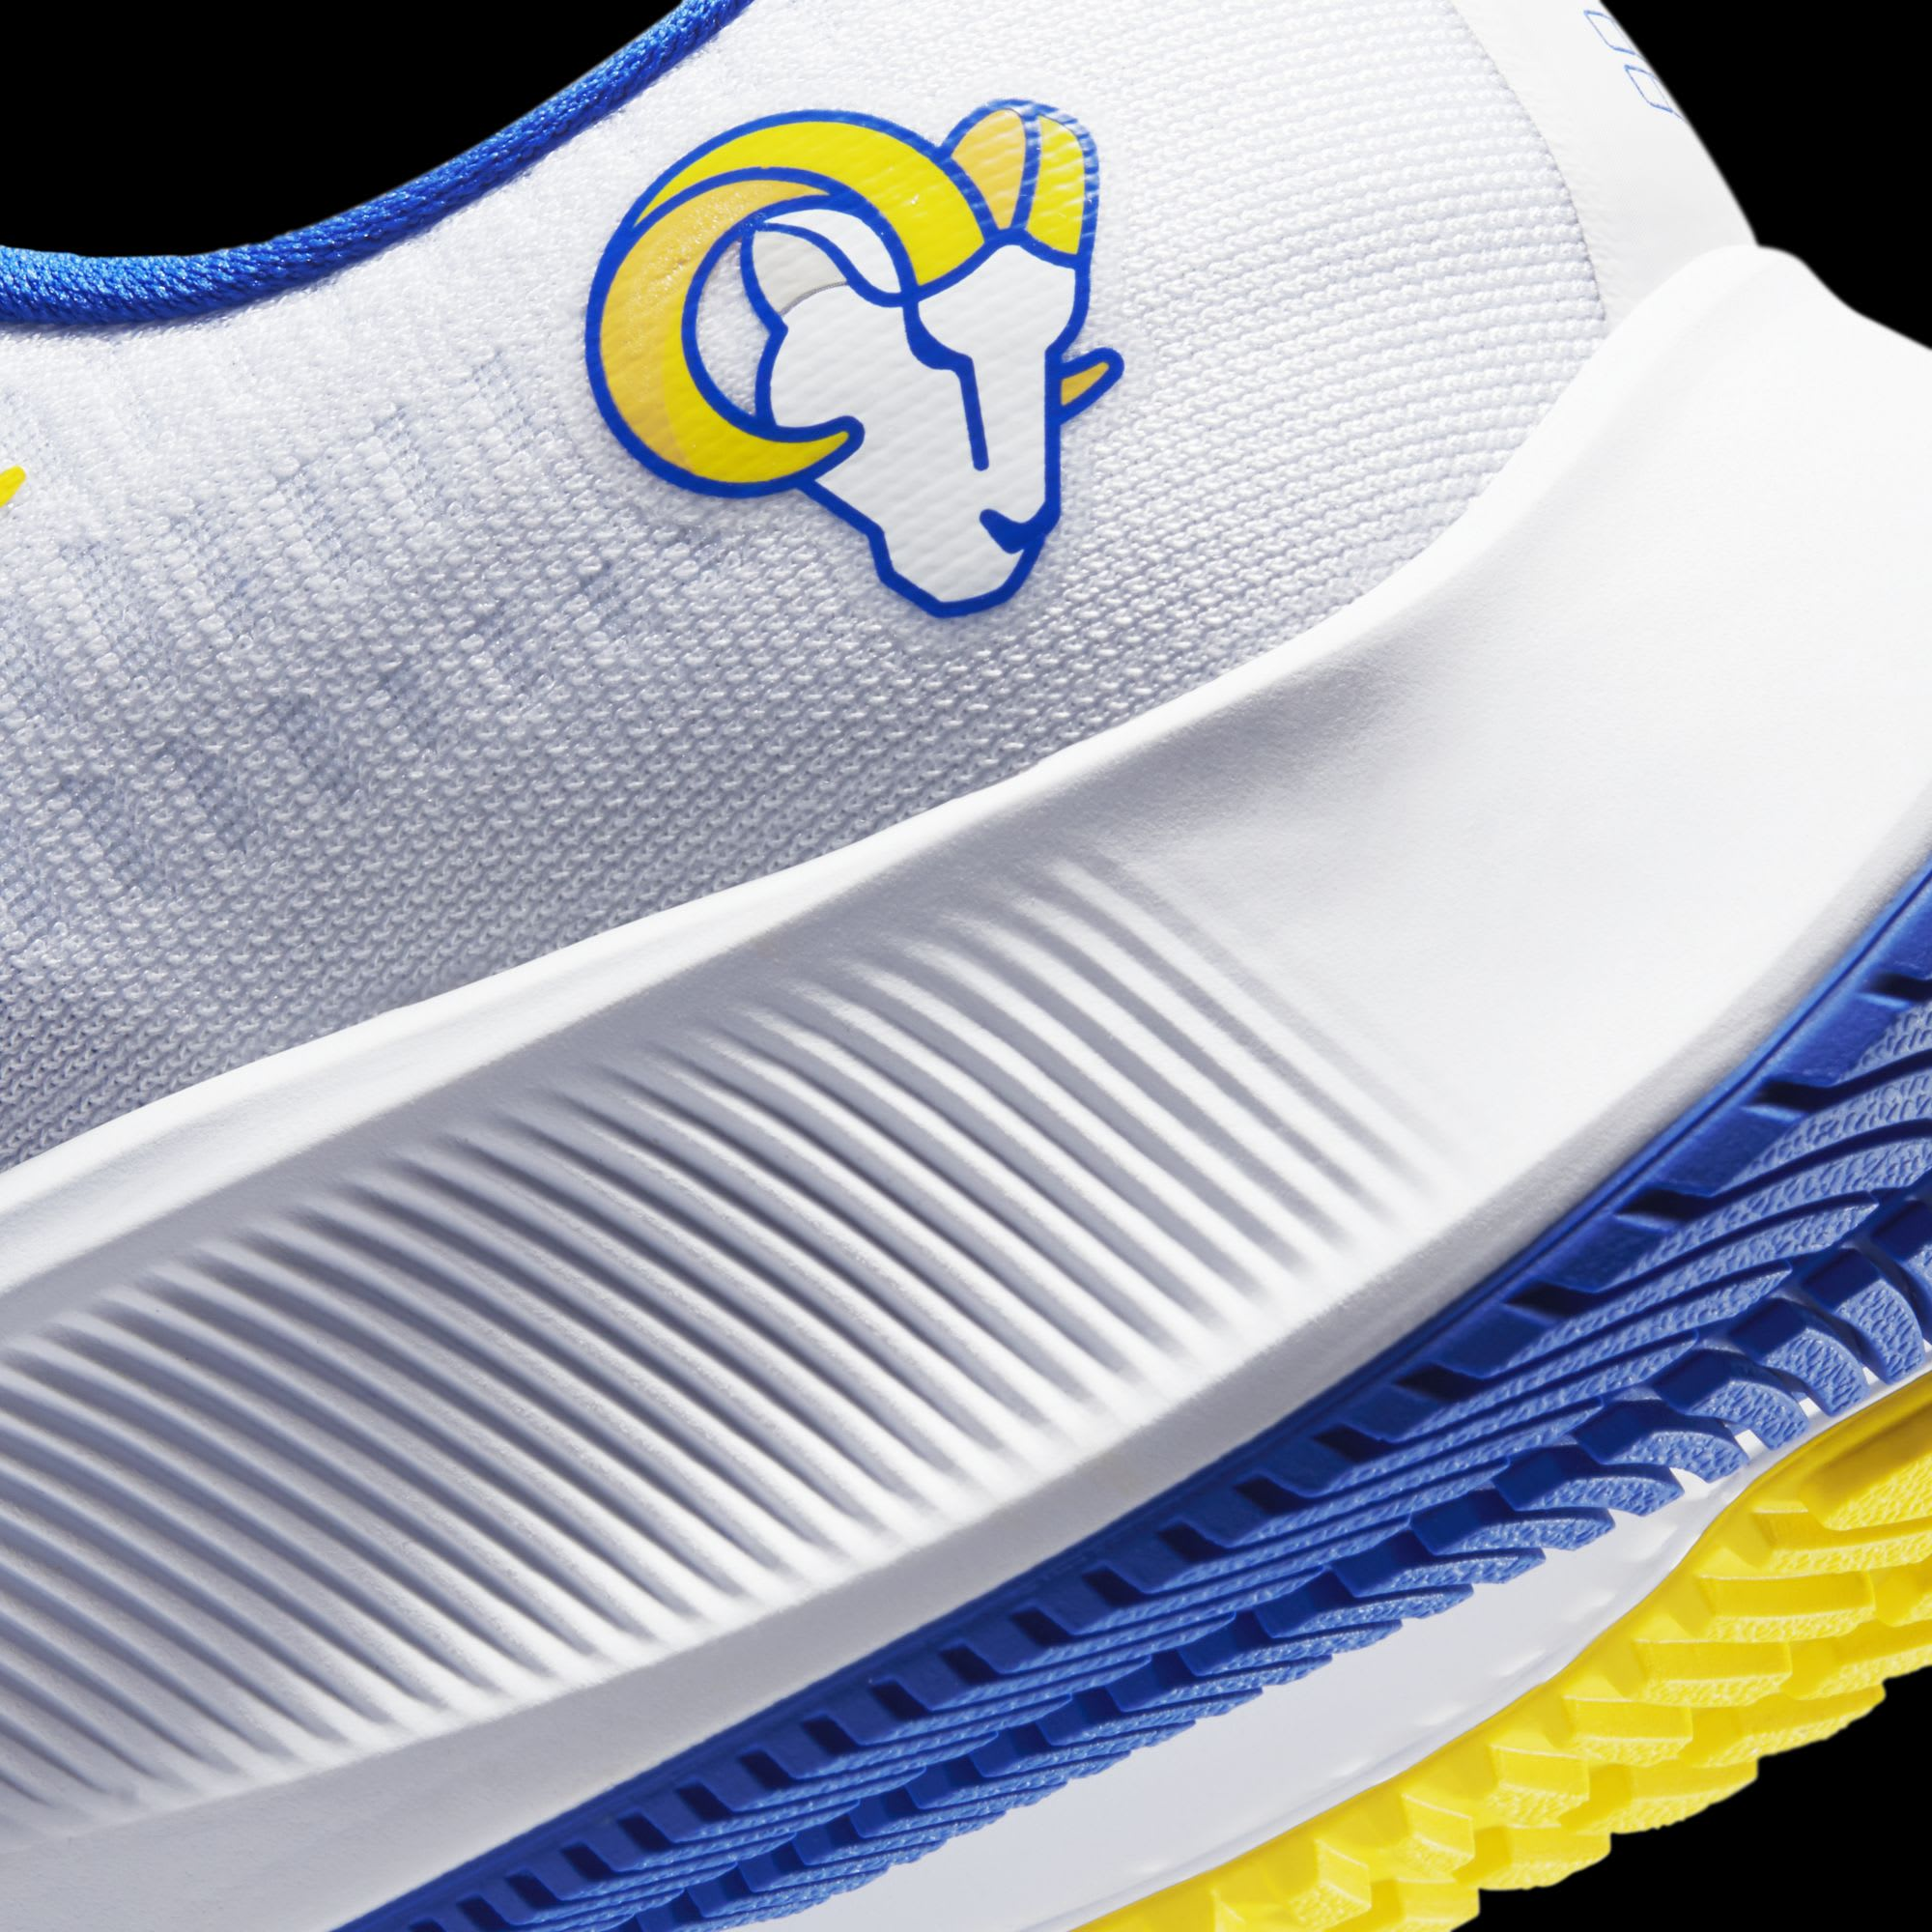 These Los Angeles Rams Nike shoes are